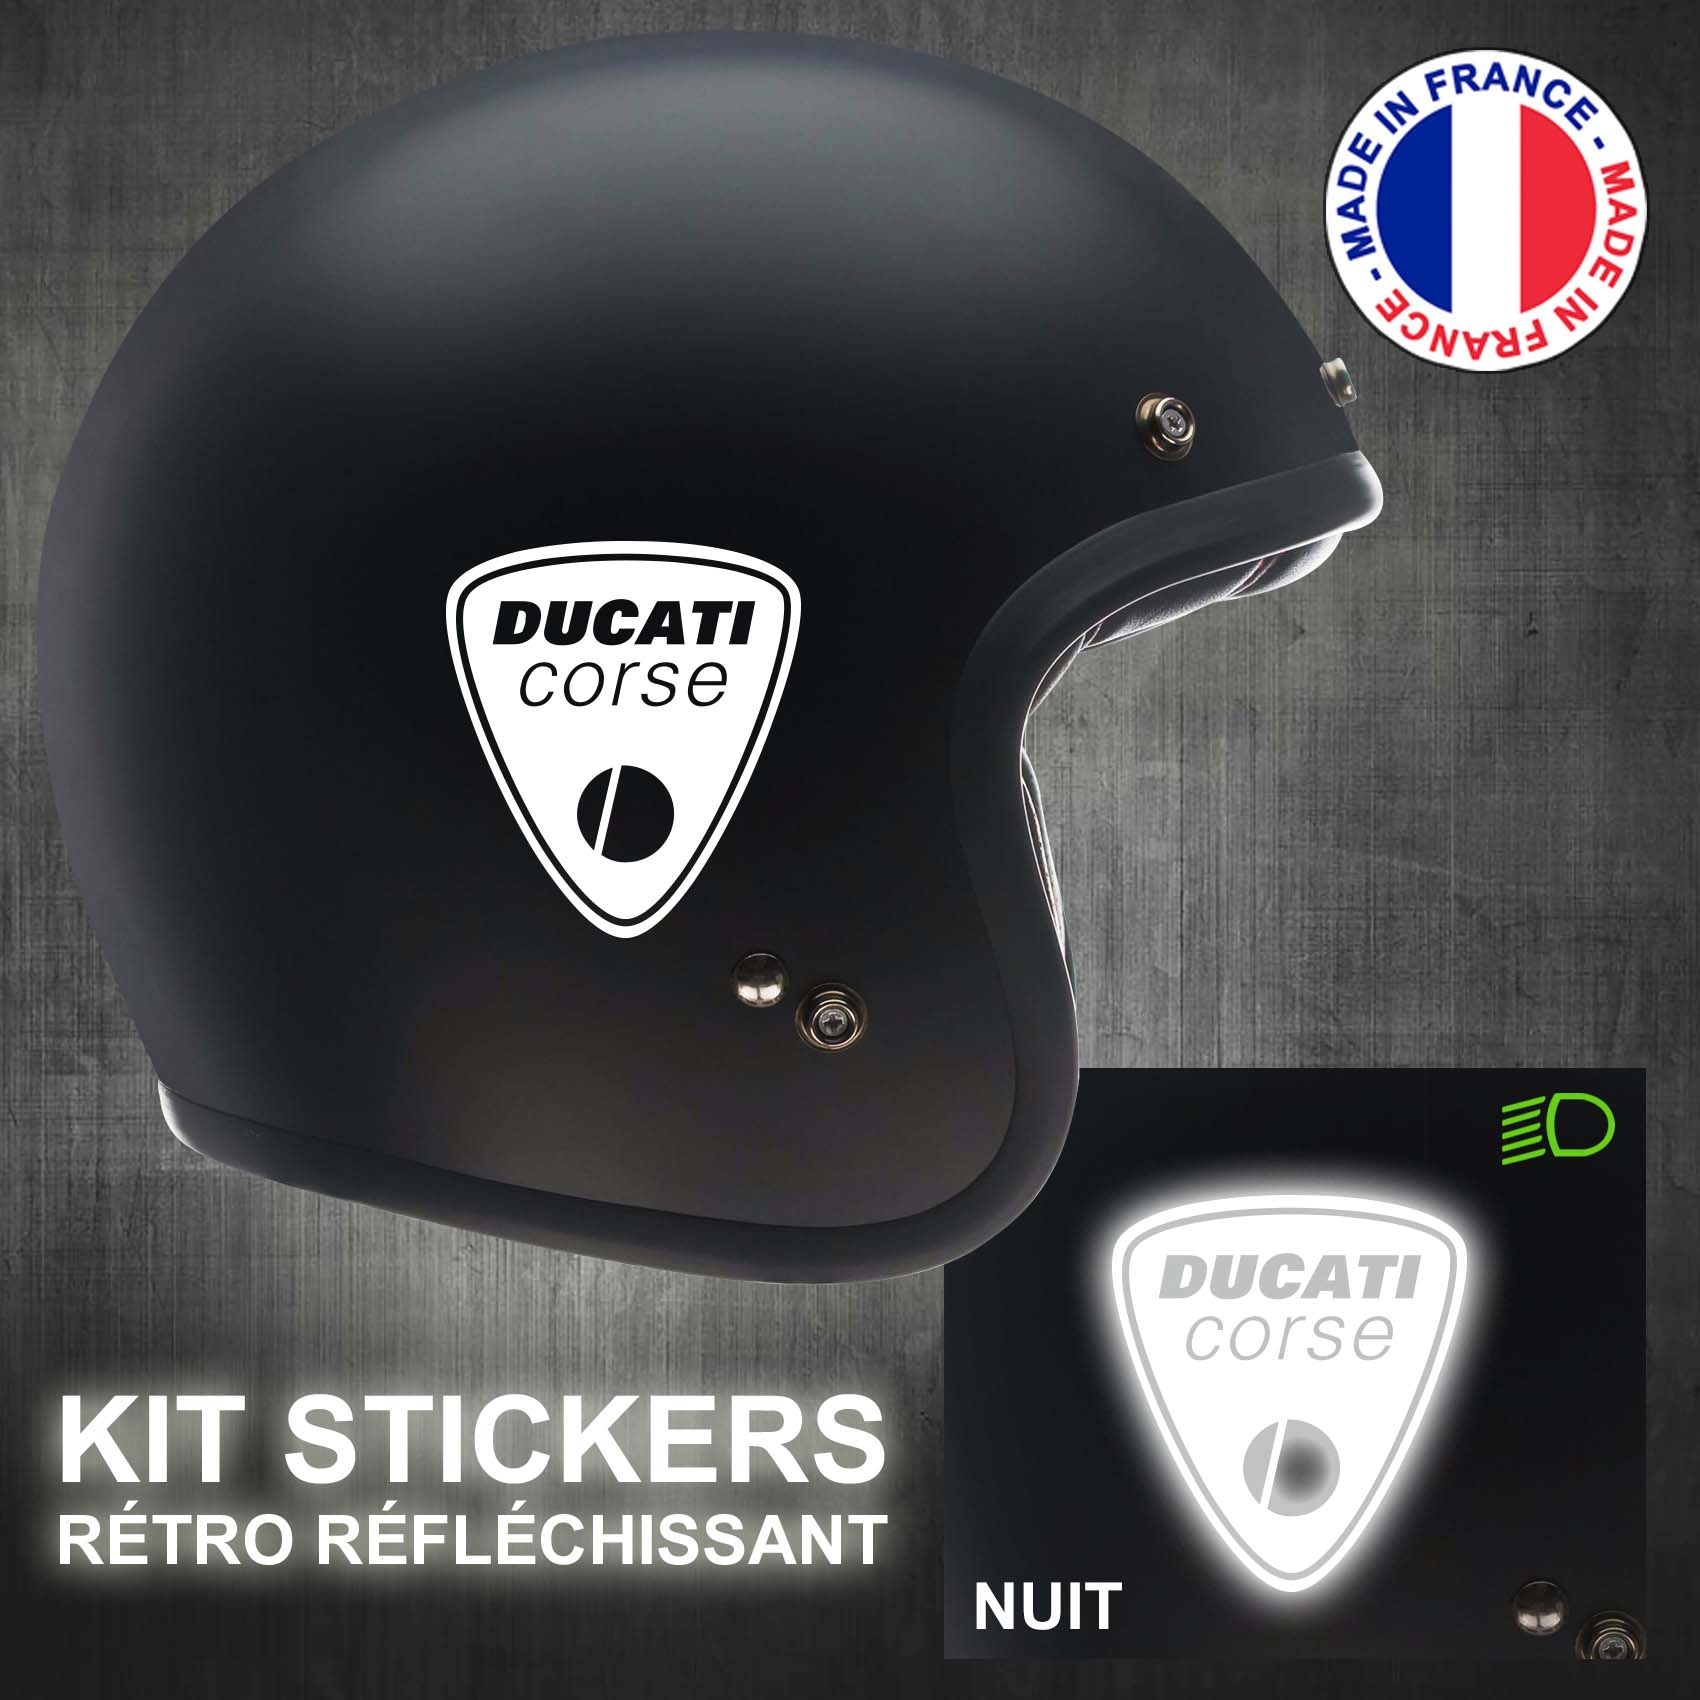 stickers-casque-moto-ducati-corse-ref1-retro-reflechissant-autocollant-noir-moto-velo-tuning-racing-route-sticker-casques-adhesif-scooter-nuit-securite-decals-personnalise-personnalisable-min